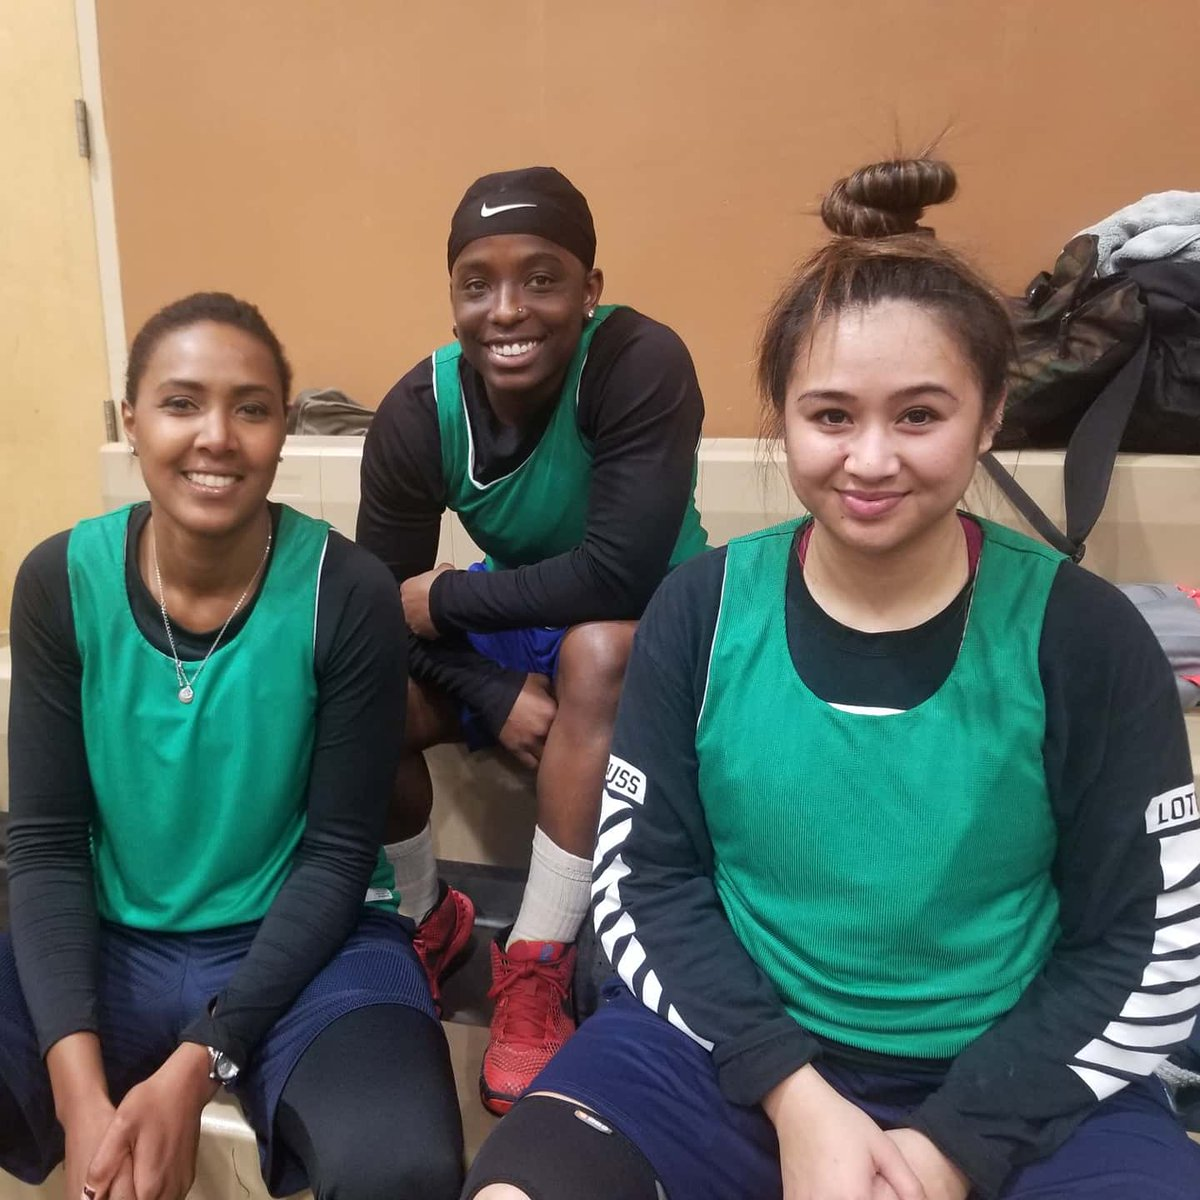 Ready with 3. Thursday Night Pick Up Games, 5 on 5 tomorrow at 7p in Oakland! See you there  • 2/20 @ #Bushrod Rec Center, #Oakland. 7:00p - 9:00p • $5 per player  #WomensBasketball #WomenInSports #RecreationMatters  #PickUpBasketBall #PickUpGames  #wnba #basketballpic.twitter.com/C9gtCZwaHV